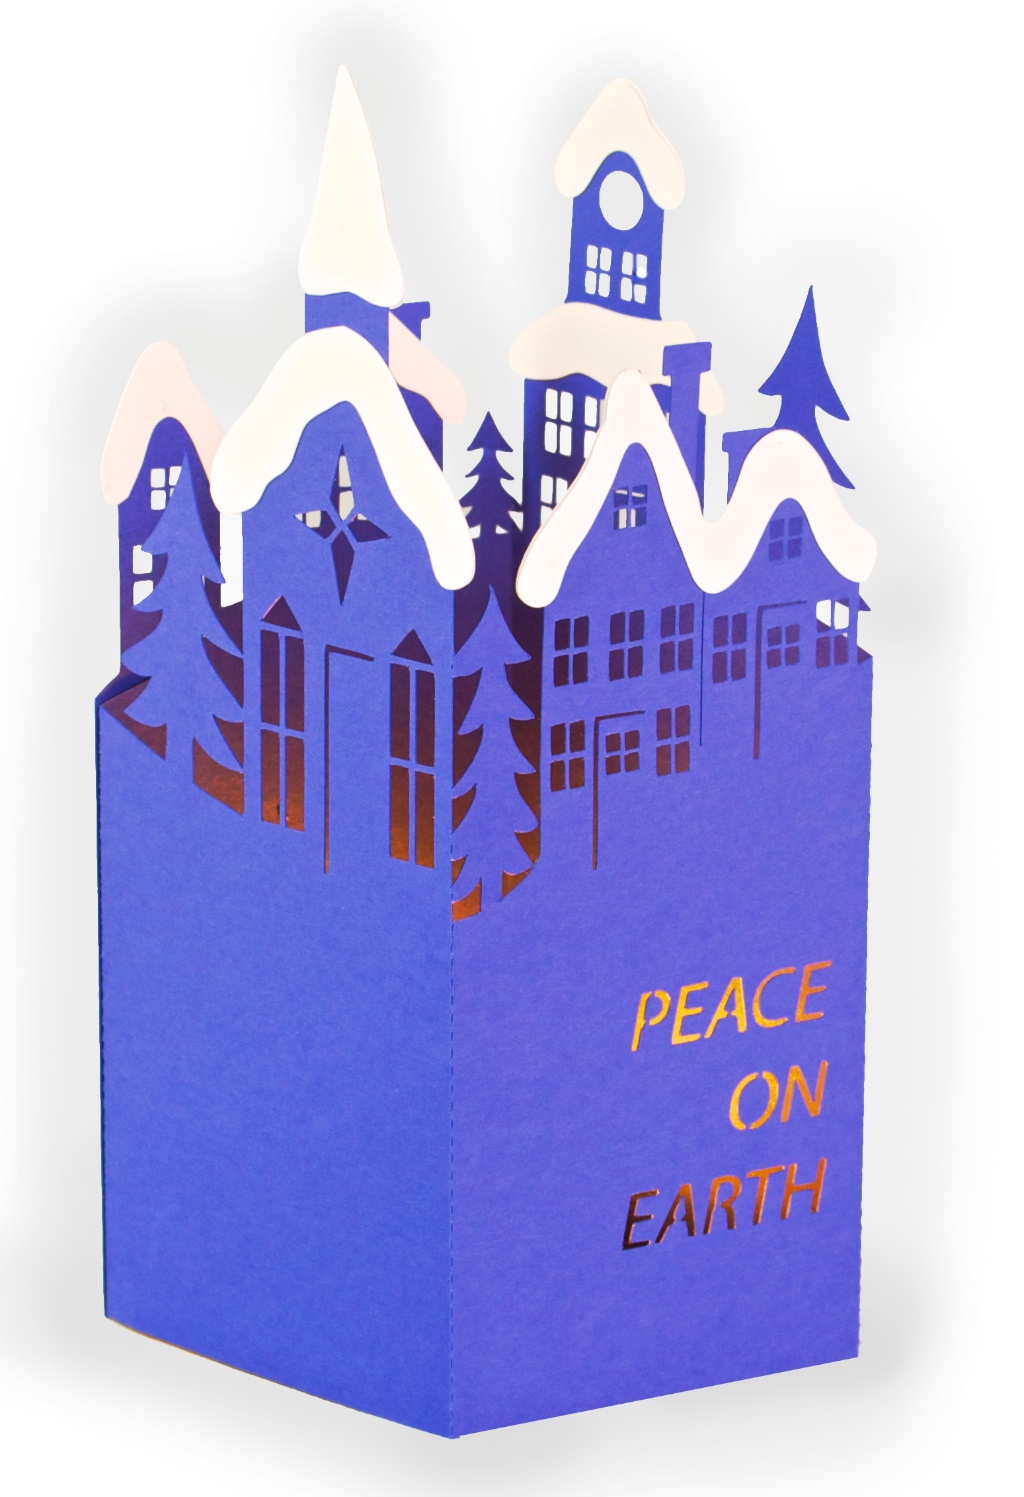 Snowy Town Christmas Card by 3DCuts.com, Marji Roy, 3D cutting files in .svg, .dxf, and .pdf formats for use with Silhouette, Cricut and other cutting machines, paper crafting files